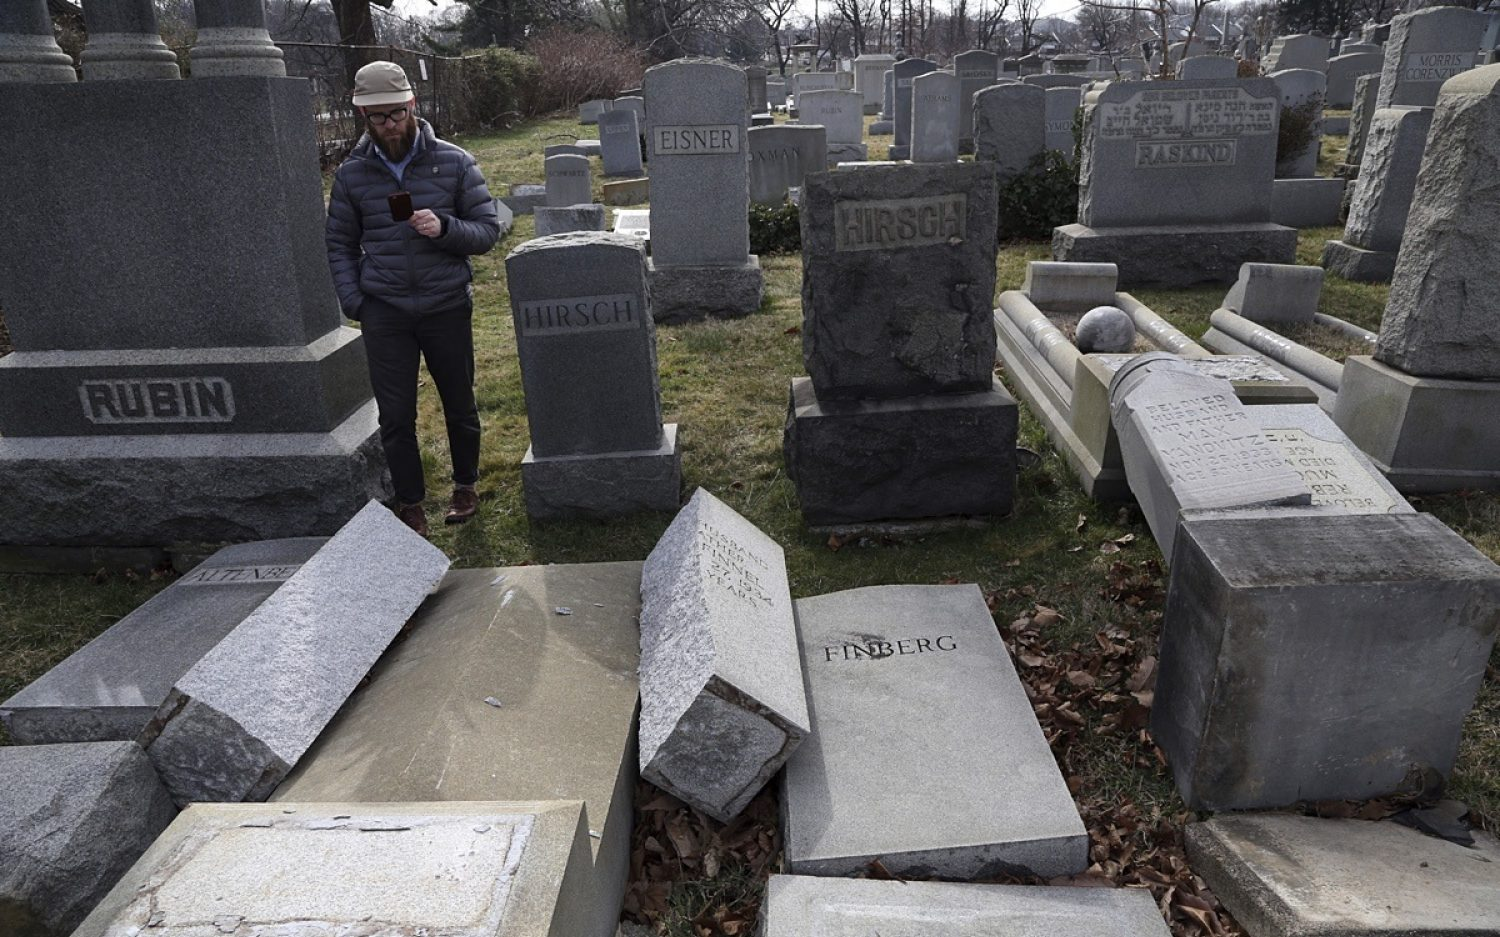 Religious hate crimes are on the rise